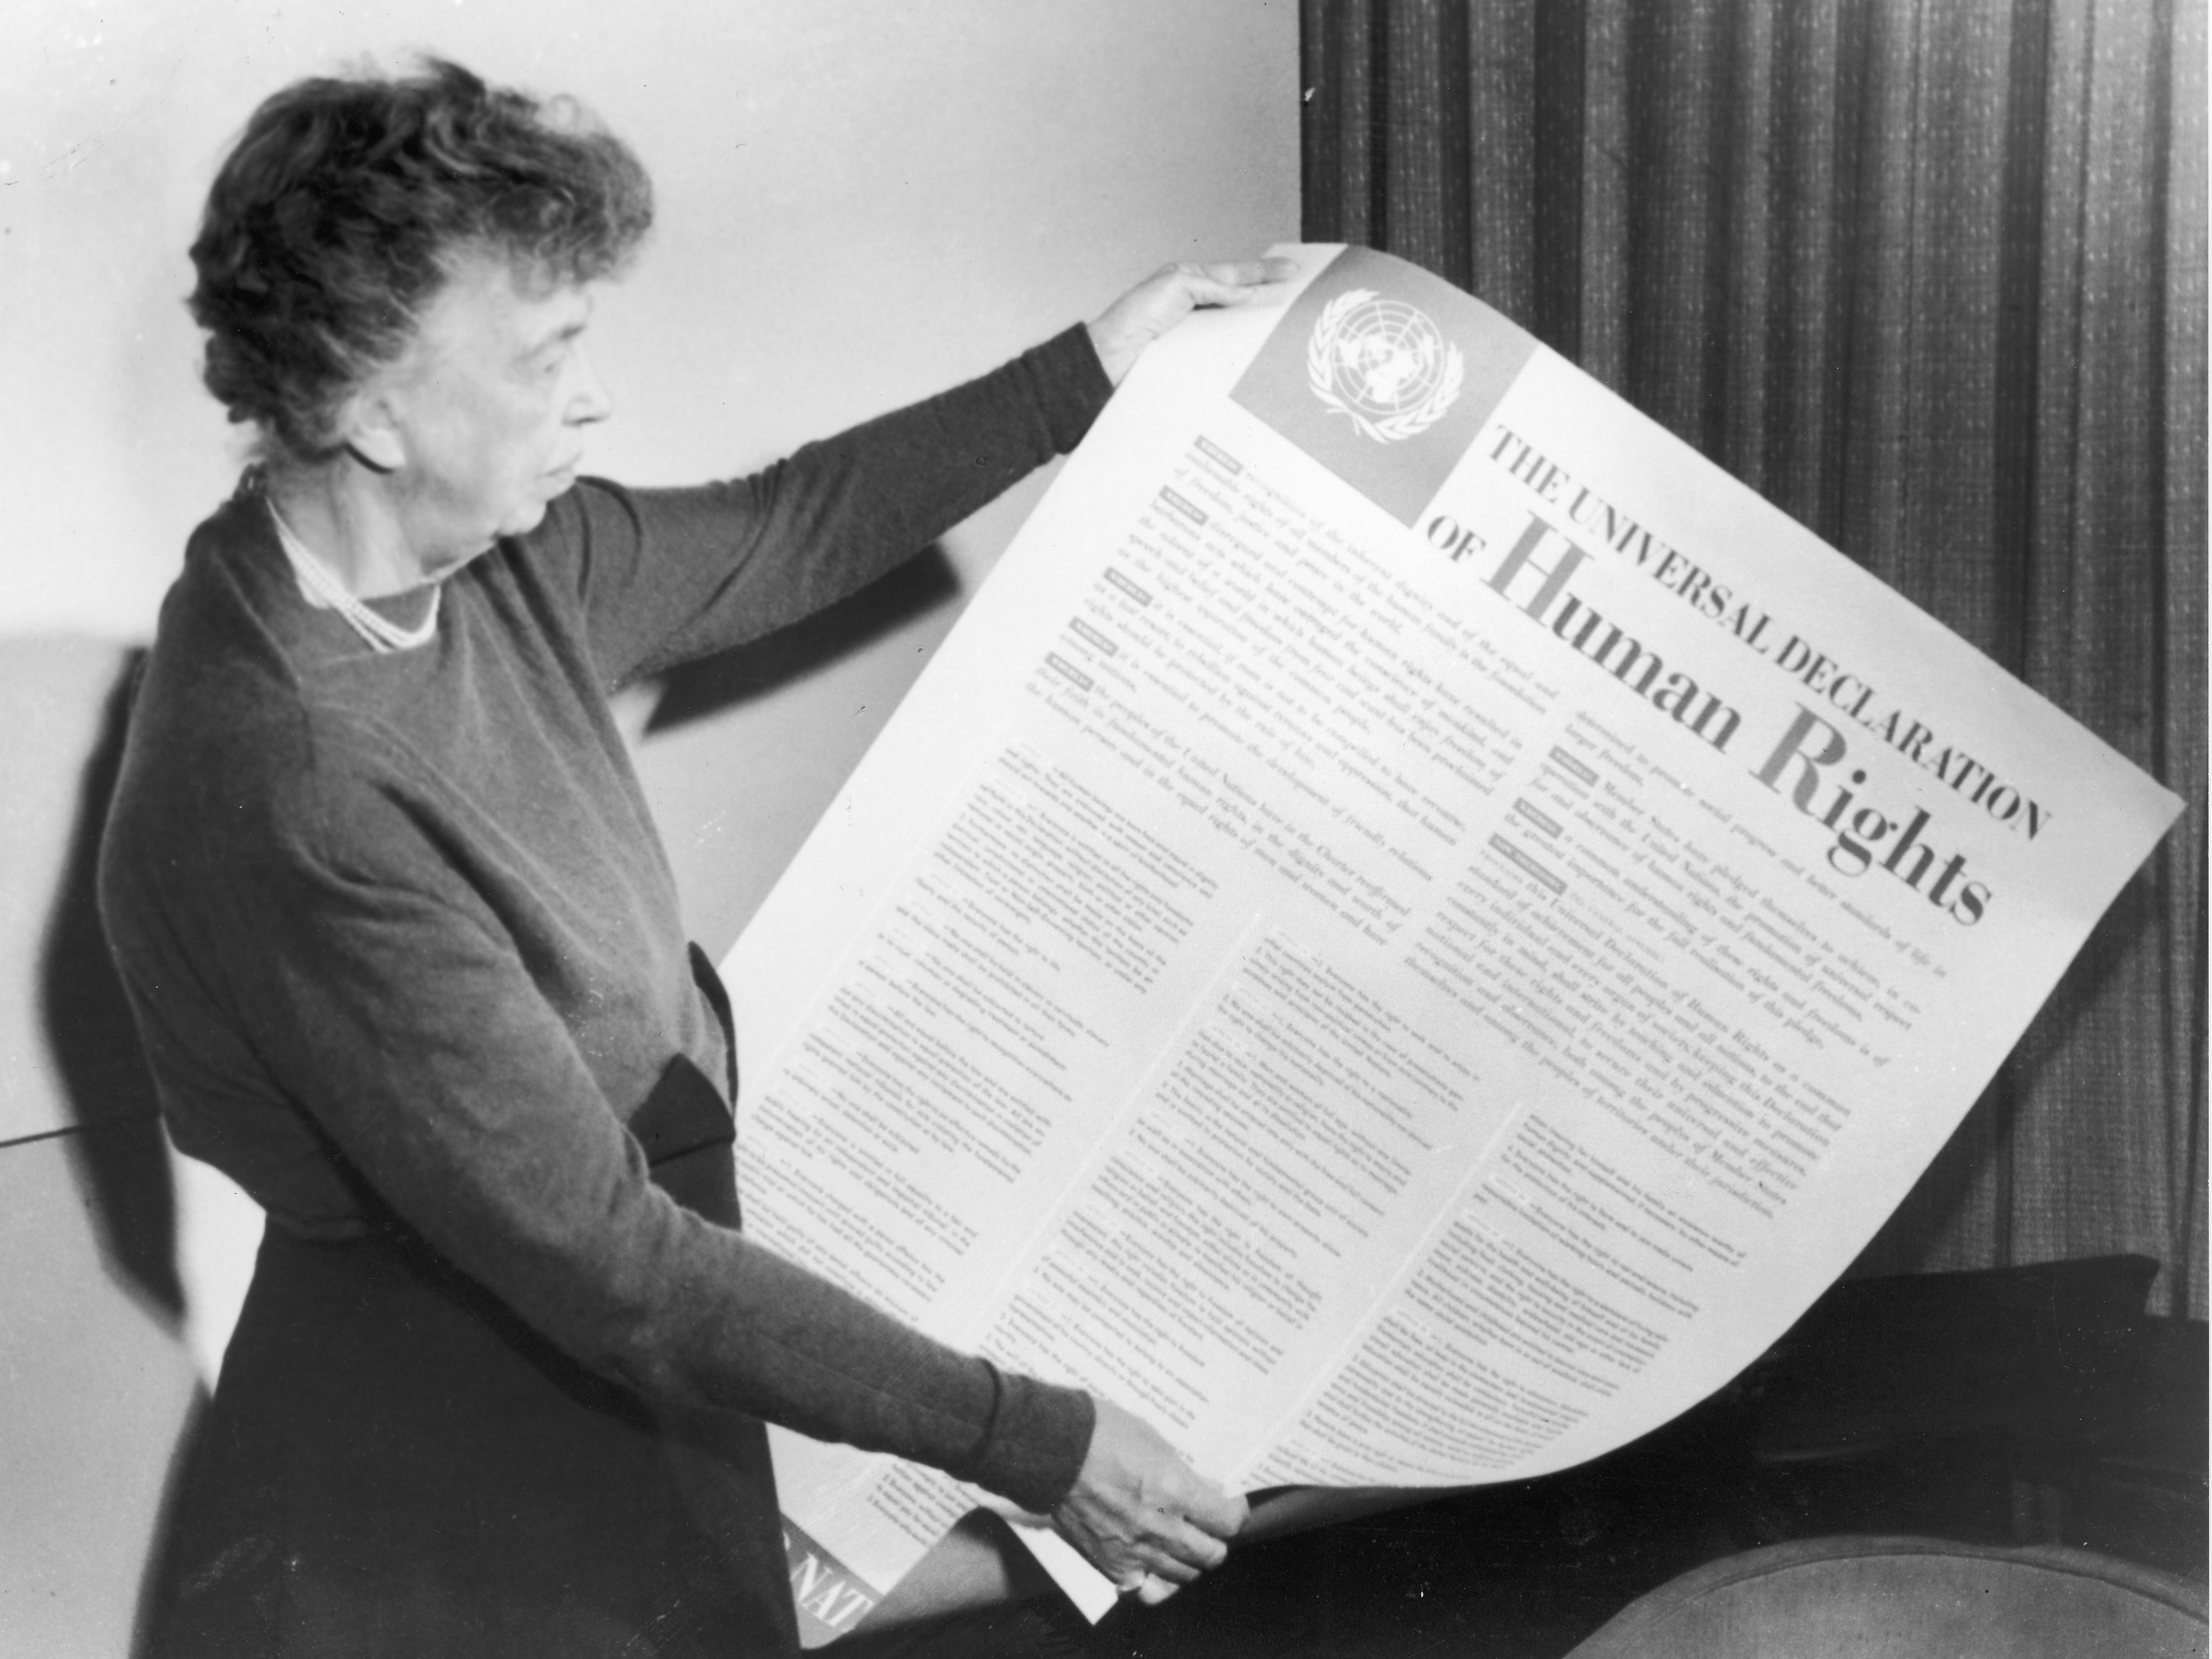 Boundlessly Idealistic, Universal Declaration Of Human Rights Is Still Resisted